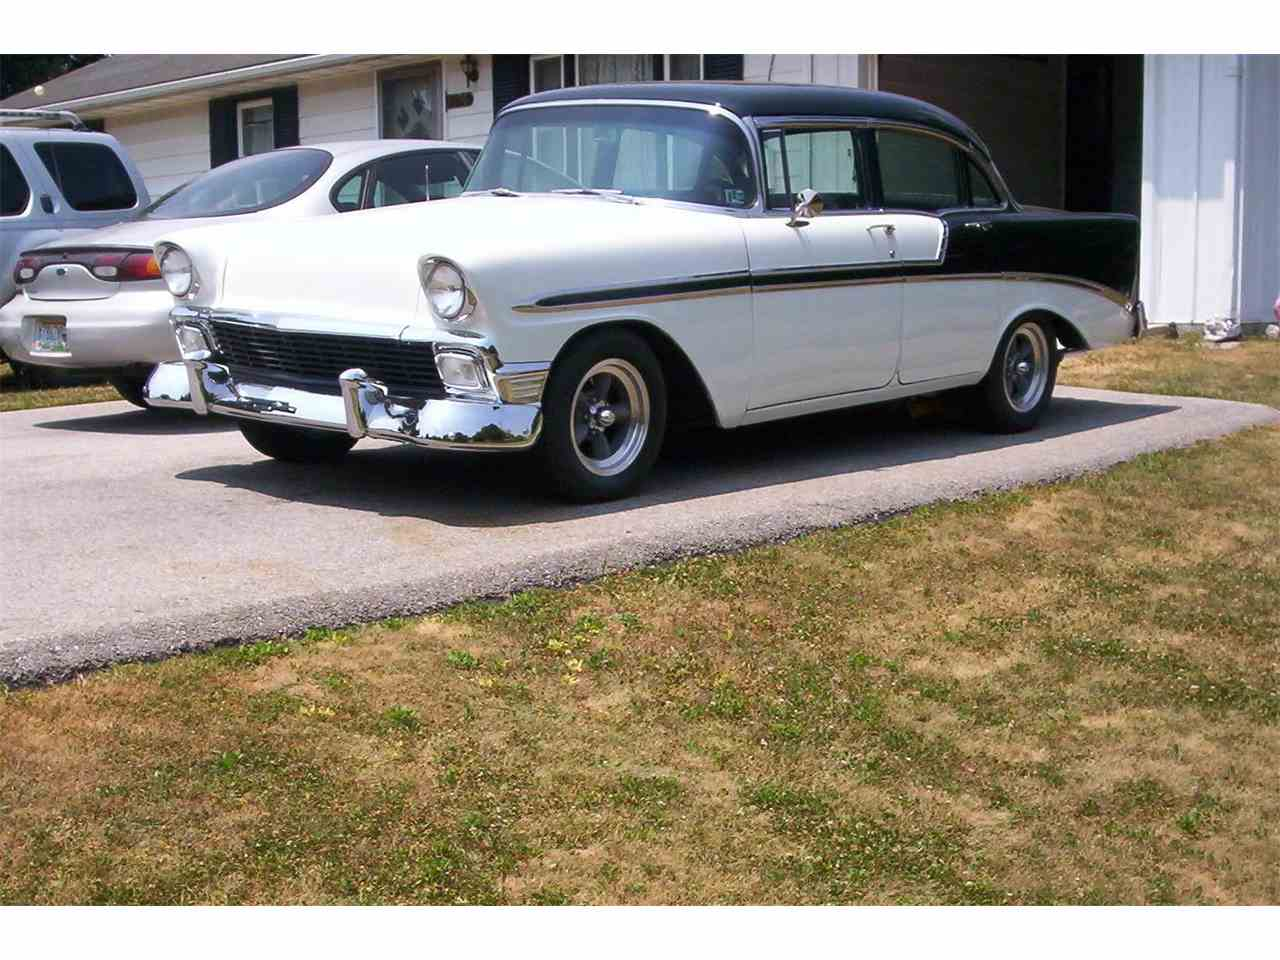 1956 chevrolet bel air for sale classic car liquidators - 1956 Chevrolet Bel Air For Sale Cc 713572